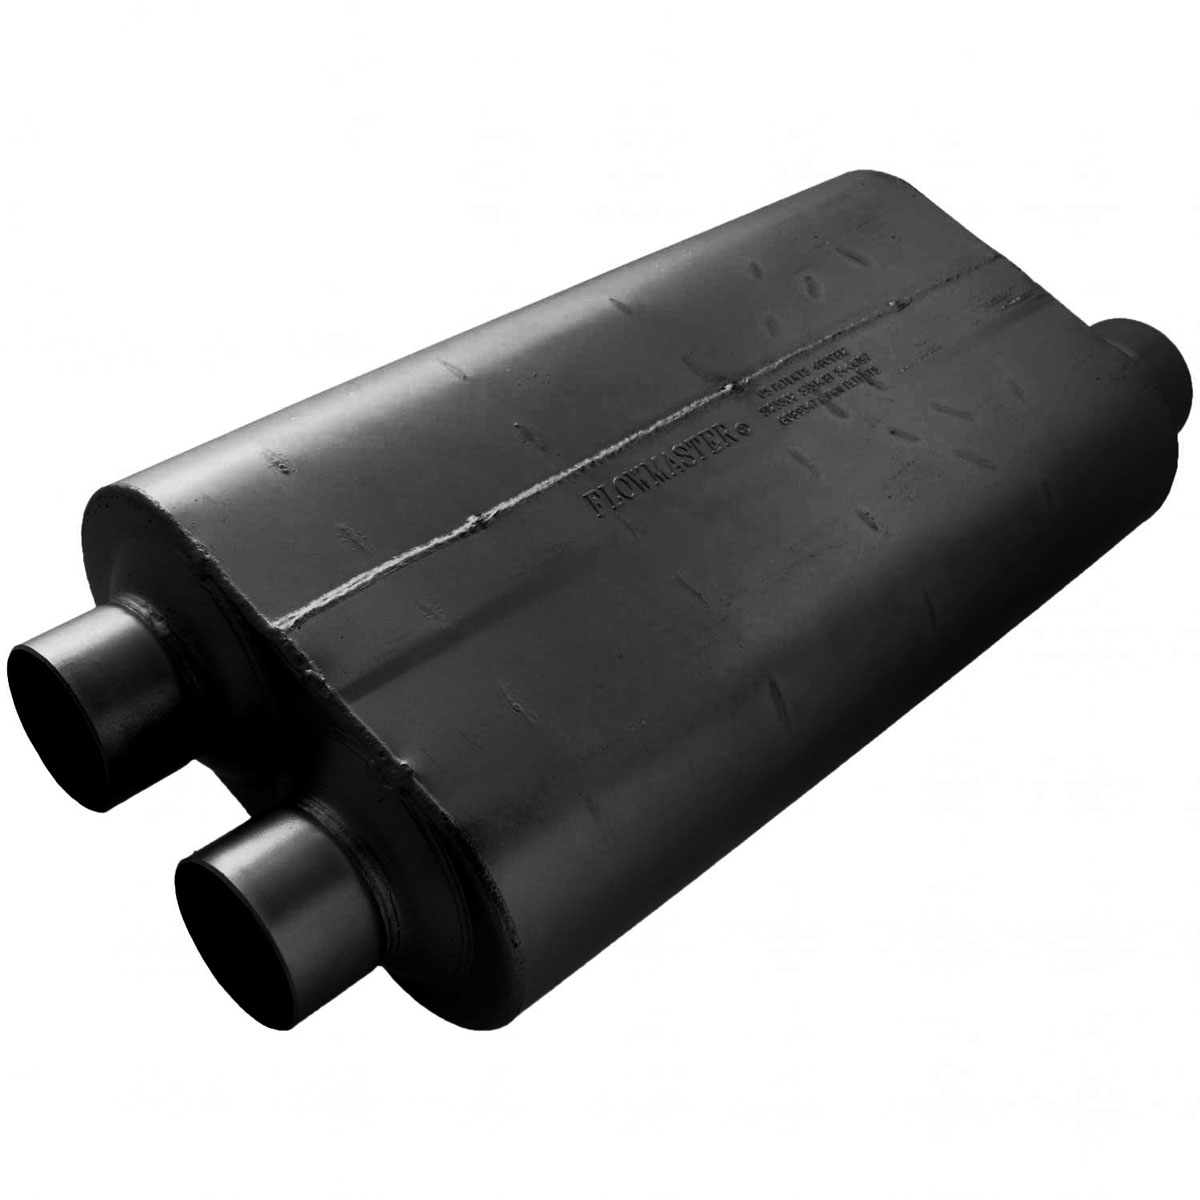 853548 Flowmaster Muffler New for Chevy F150 Truck F250 F350 Ford F-150 GMC 2500